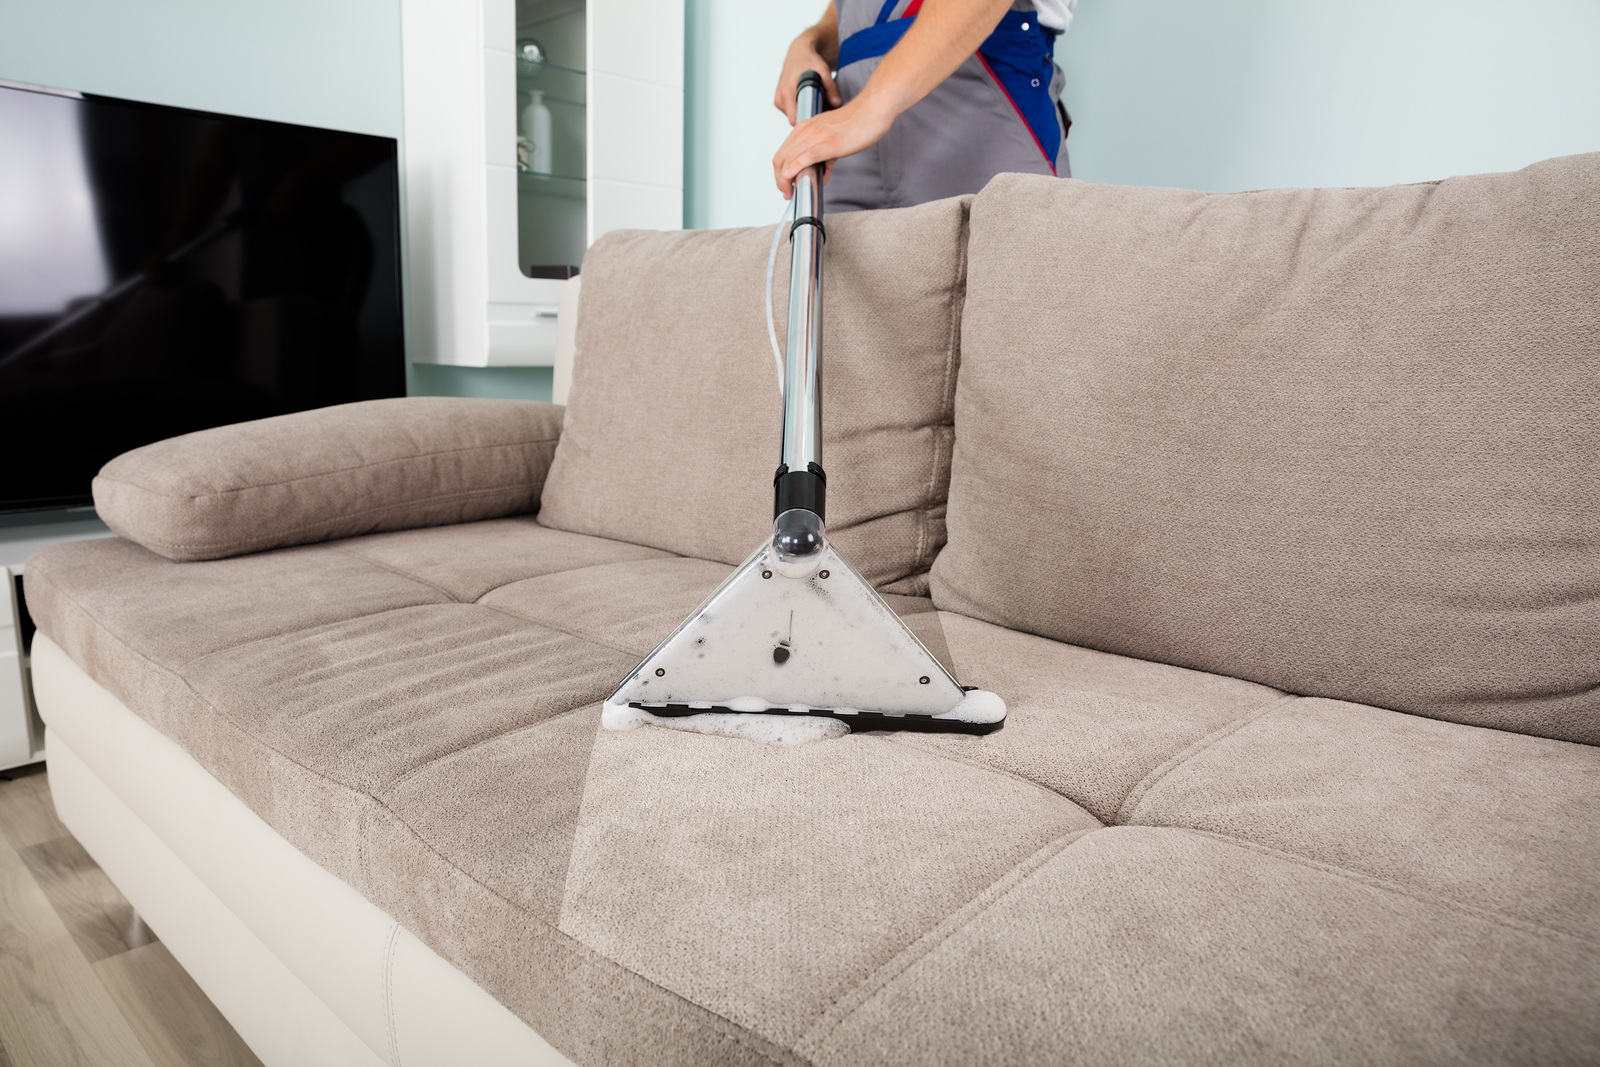 What to Expect When Calling HouseMaids in Sarasota FL   HouseMaids